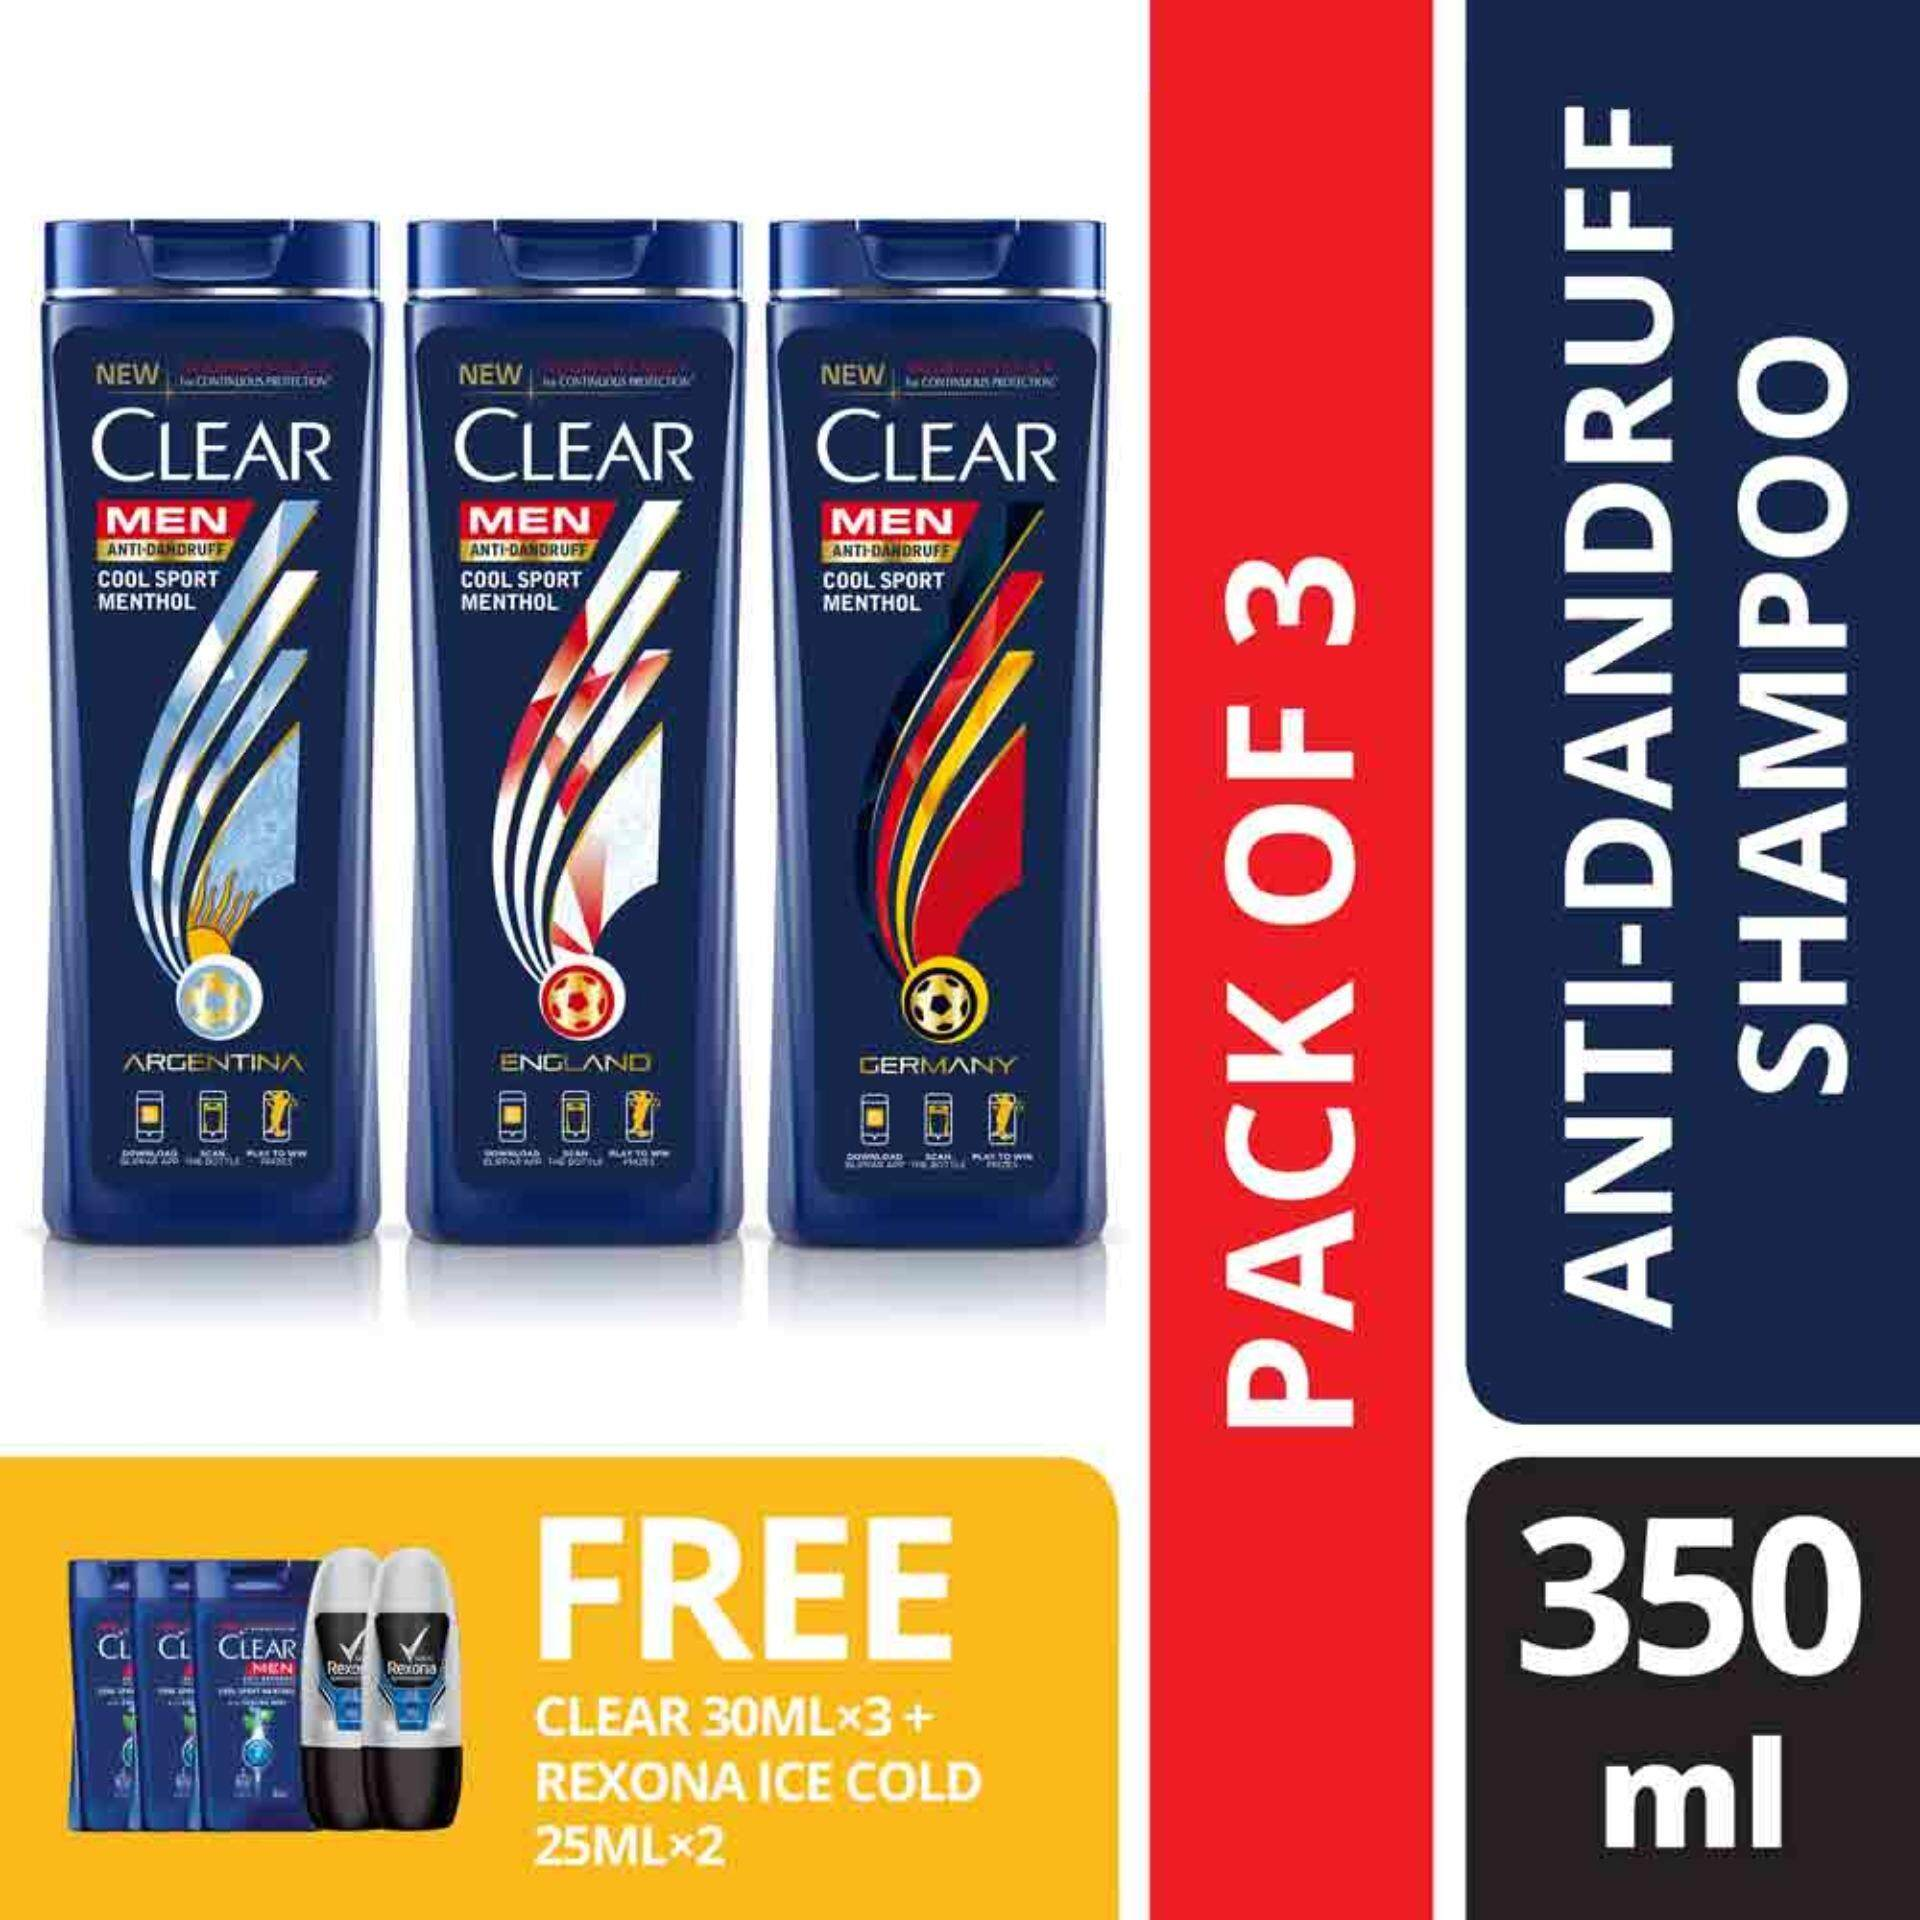 Features Clear Men Cool Sport Menthol Anti Dandruff Shampoo 350 Mlx3 Foc 30 Ml